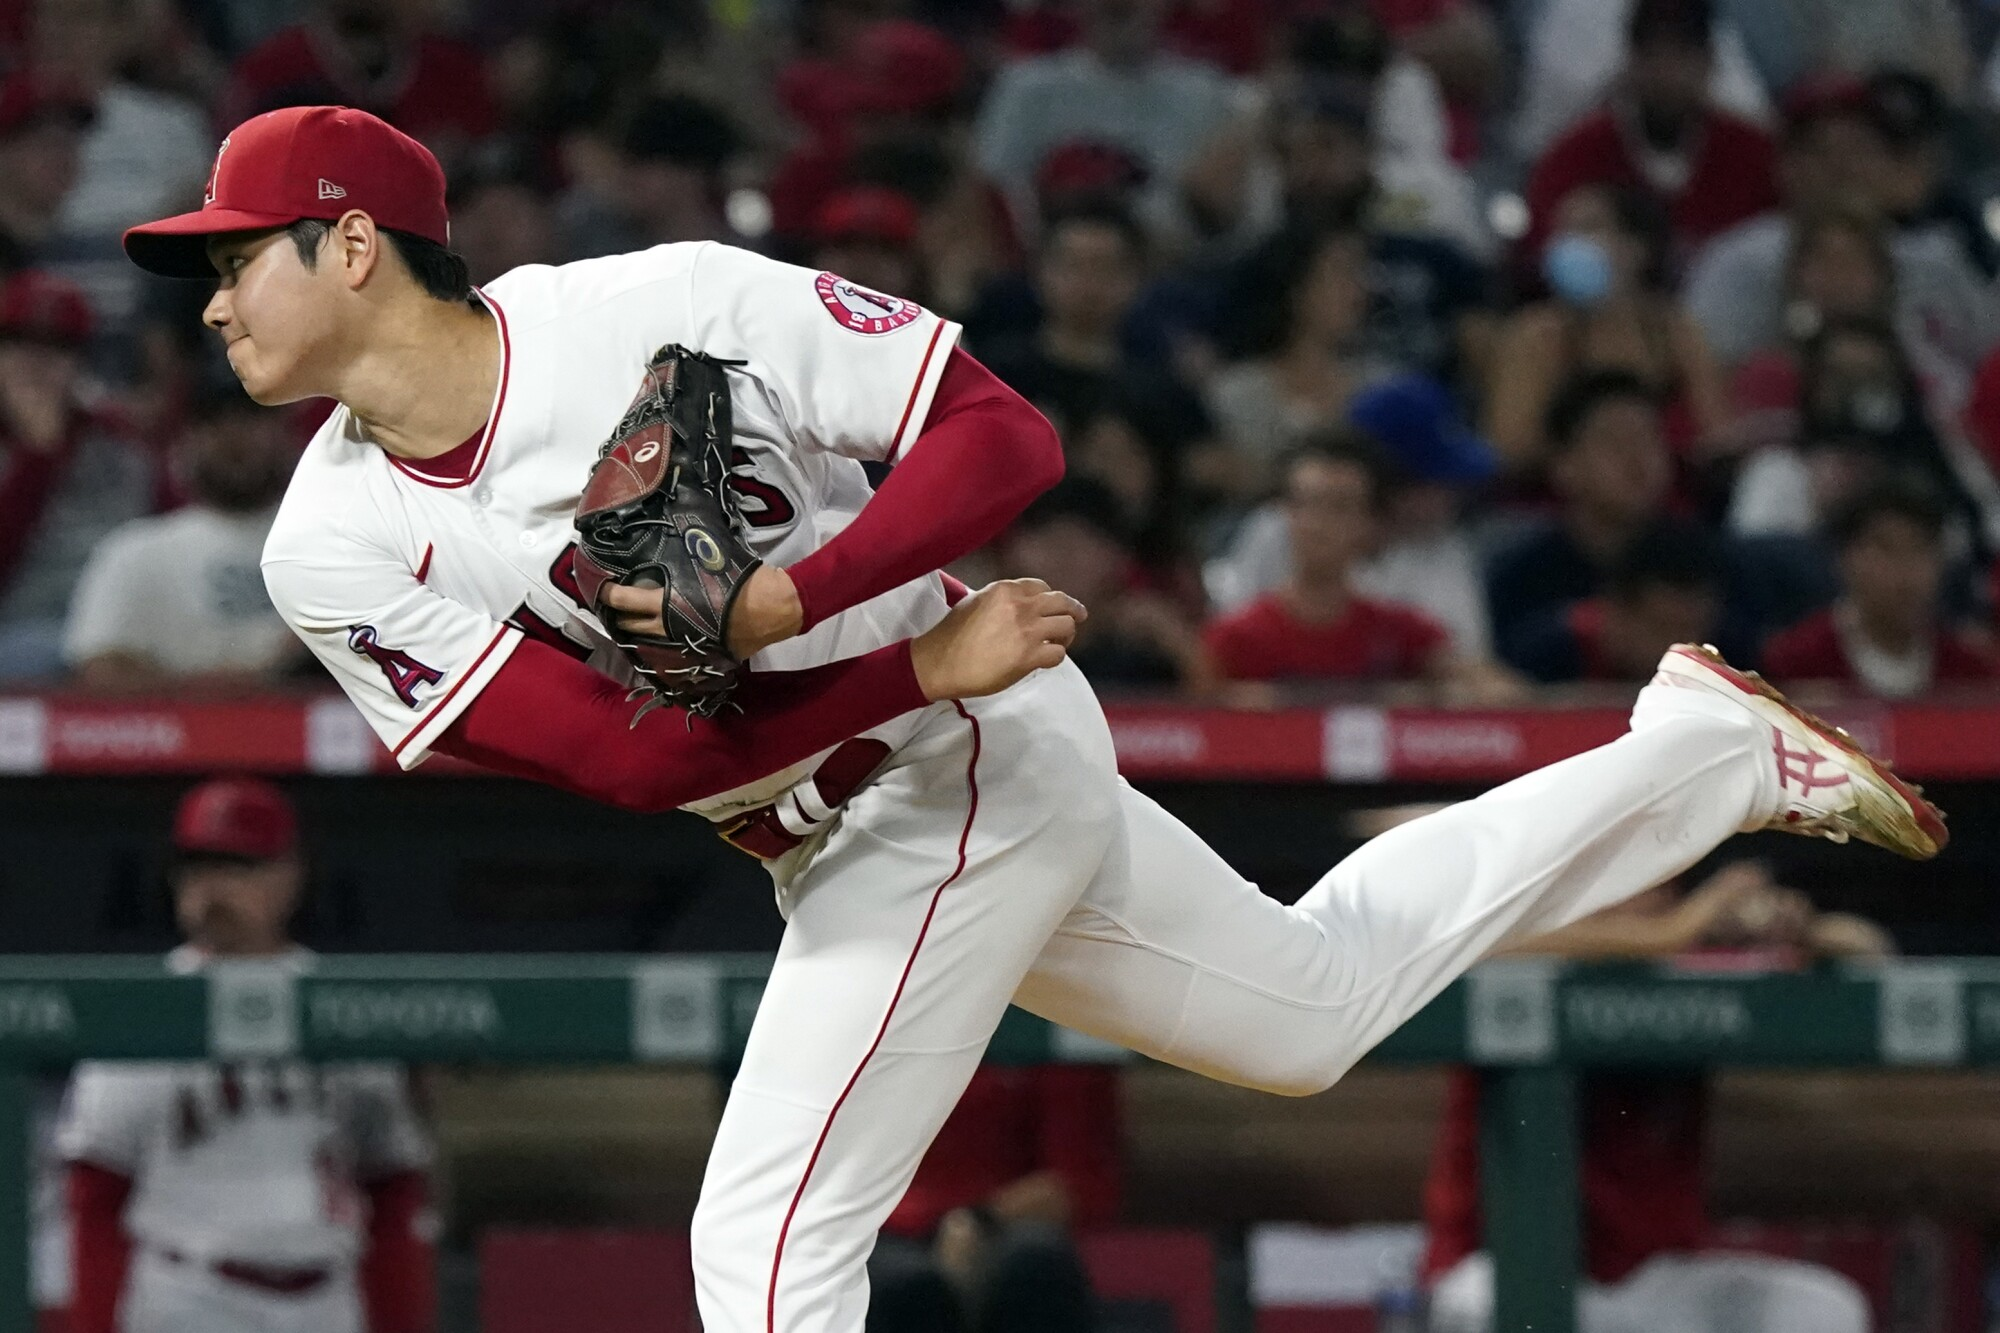 Angels pitcher Shohei Ohtani throws to a Toronto Blue Jays batter.